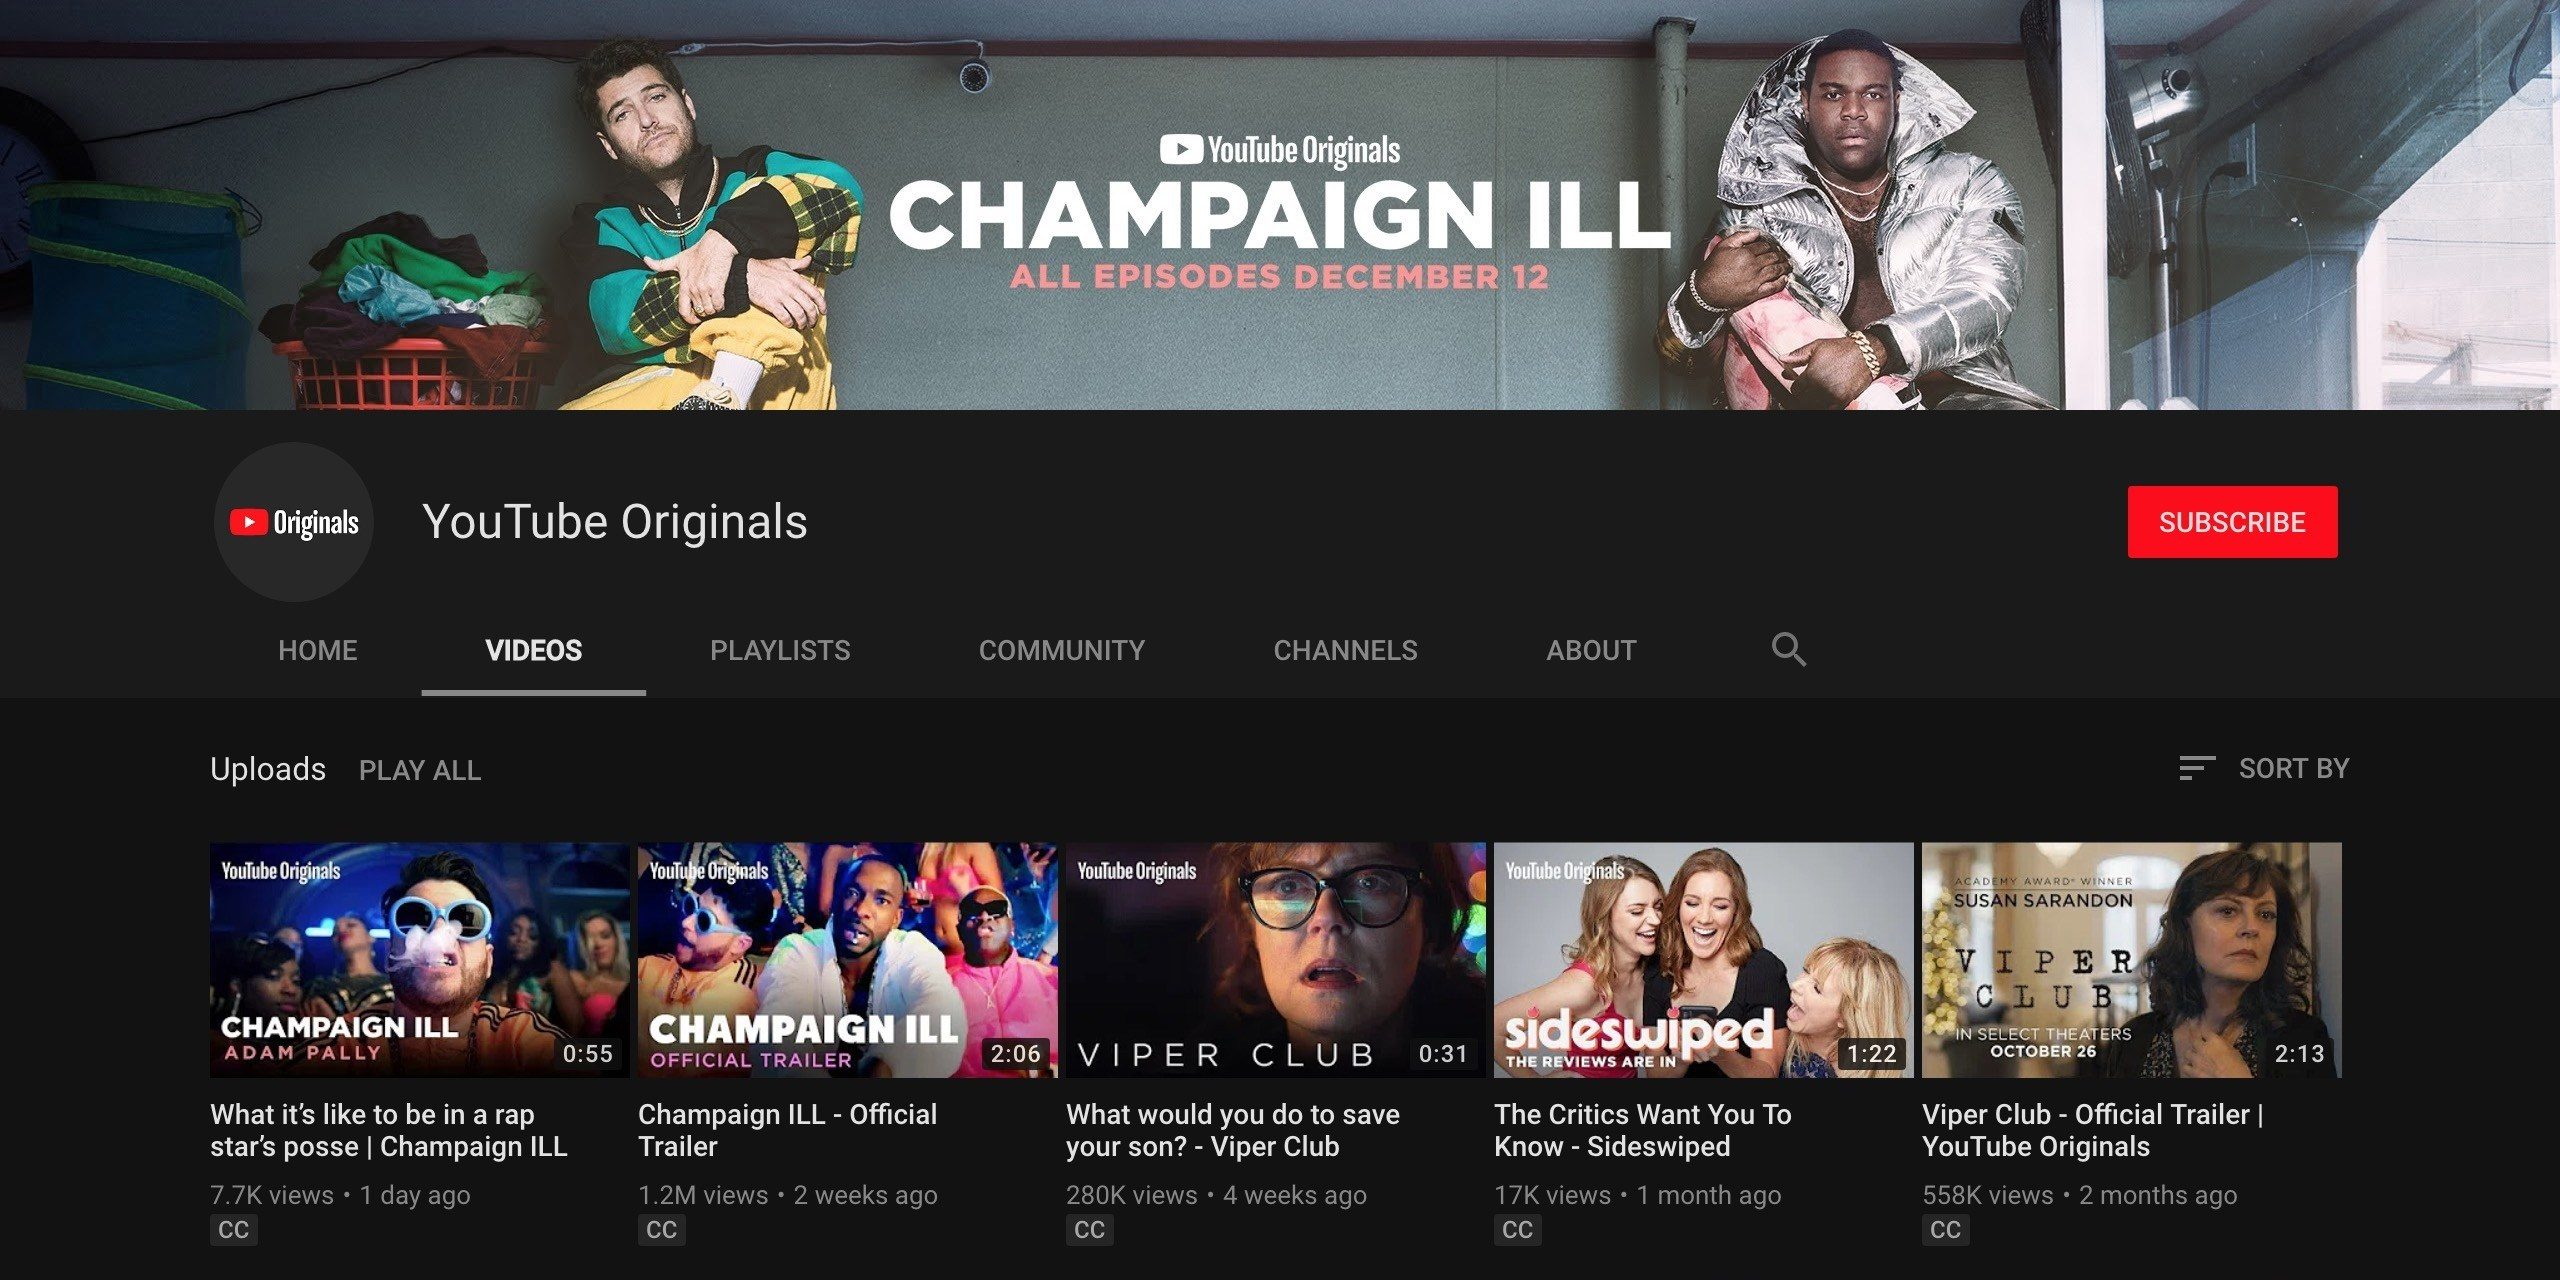 New YouTube Originals after September 24th will be free with ads